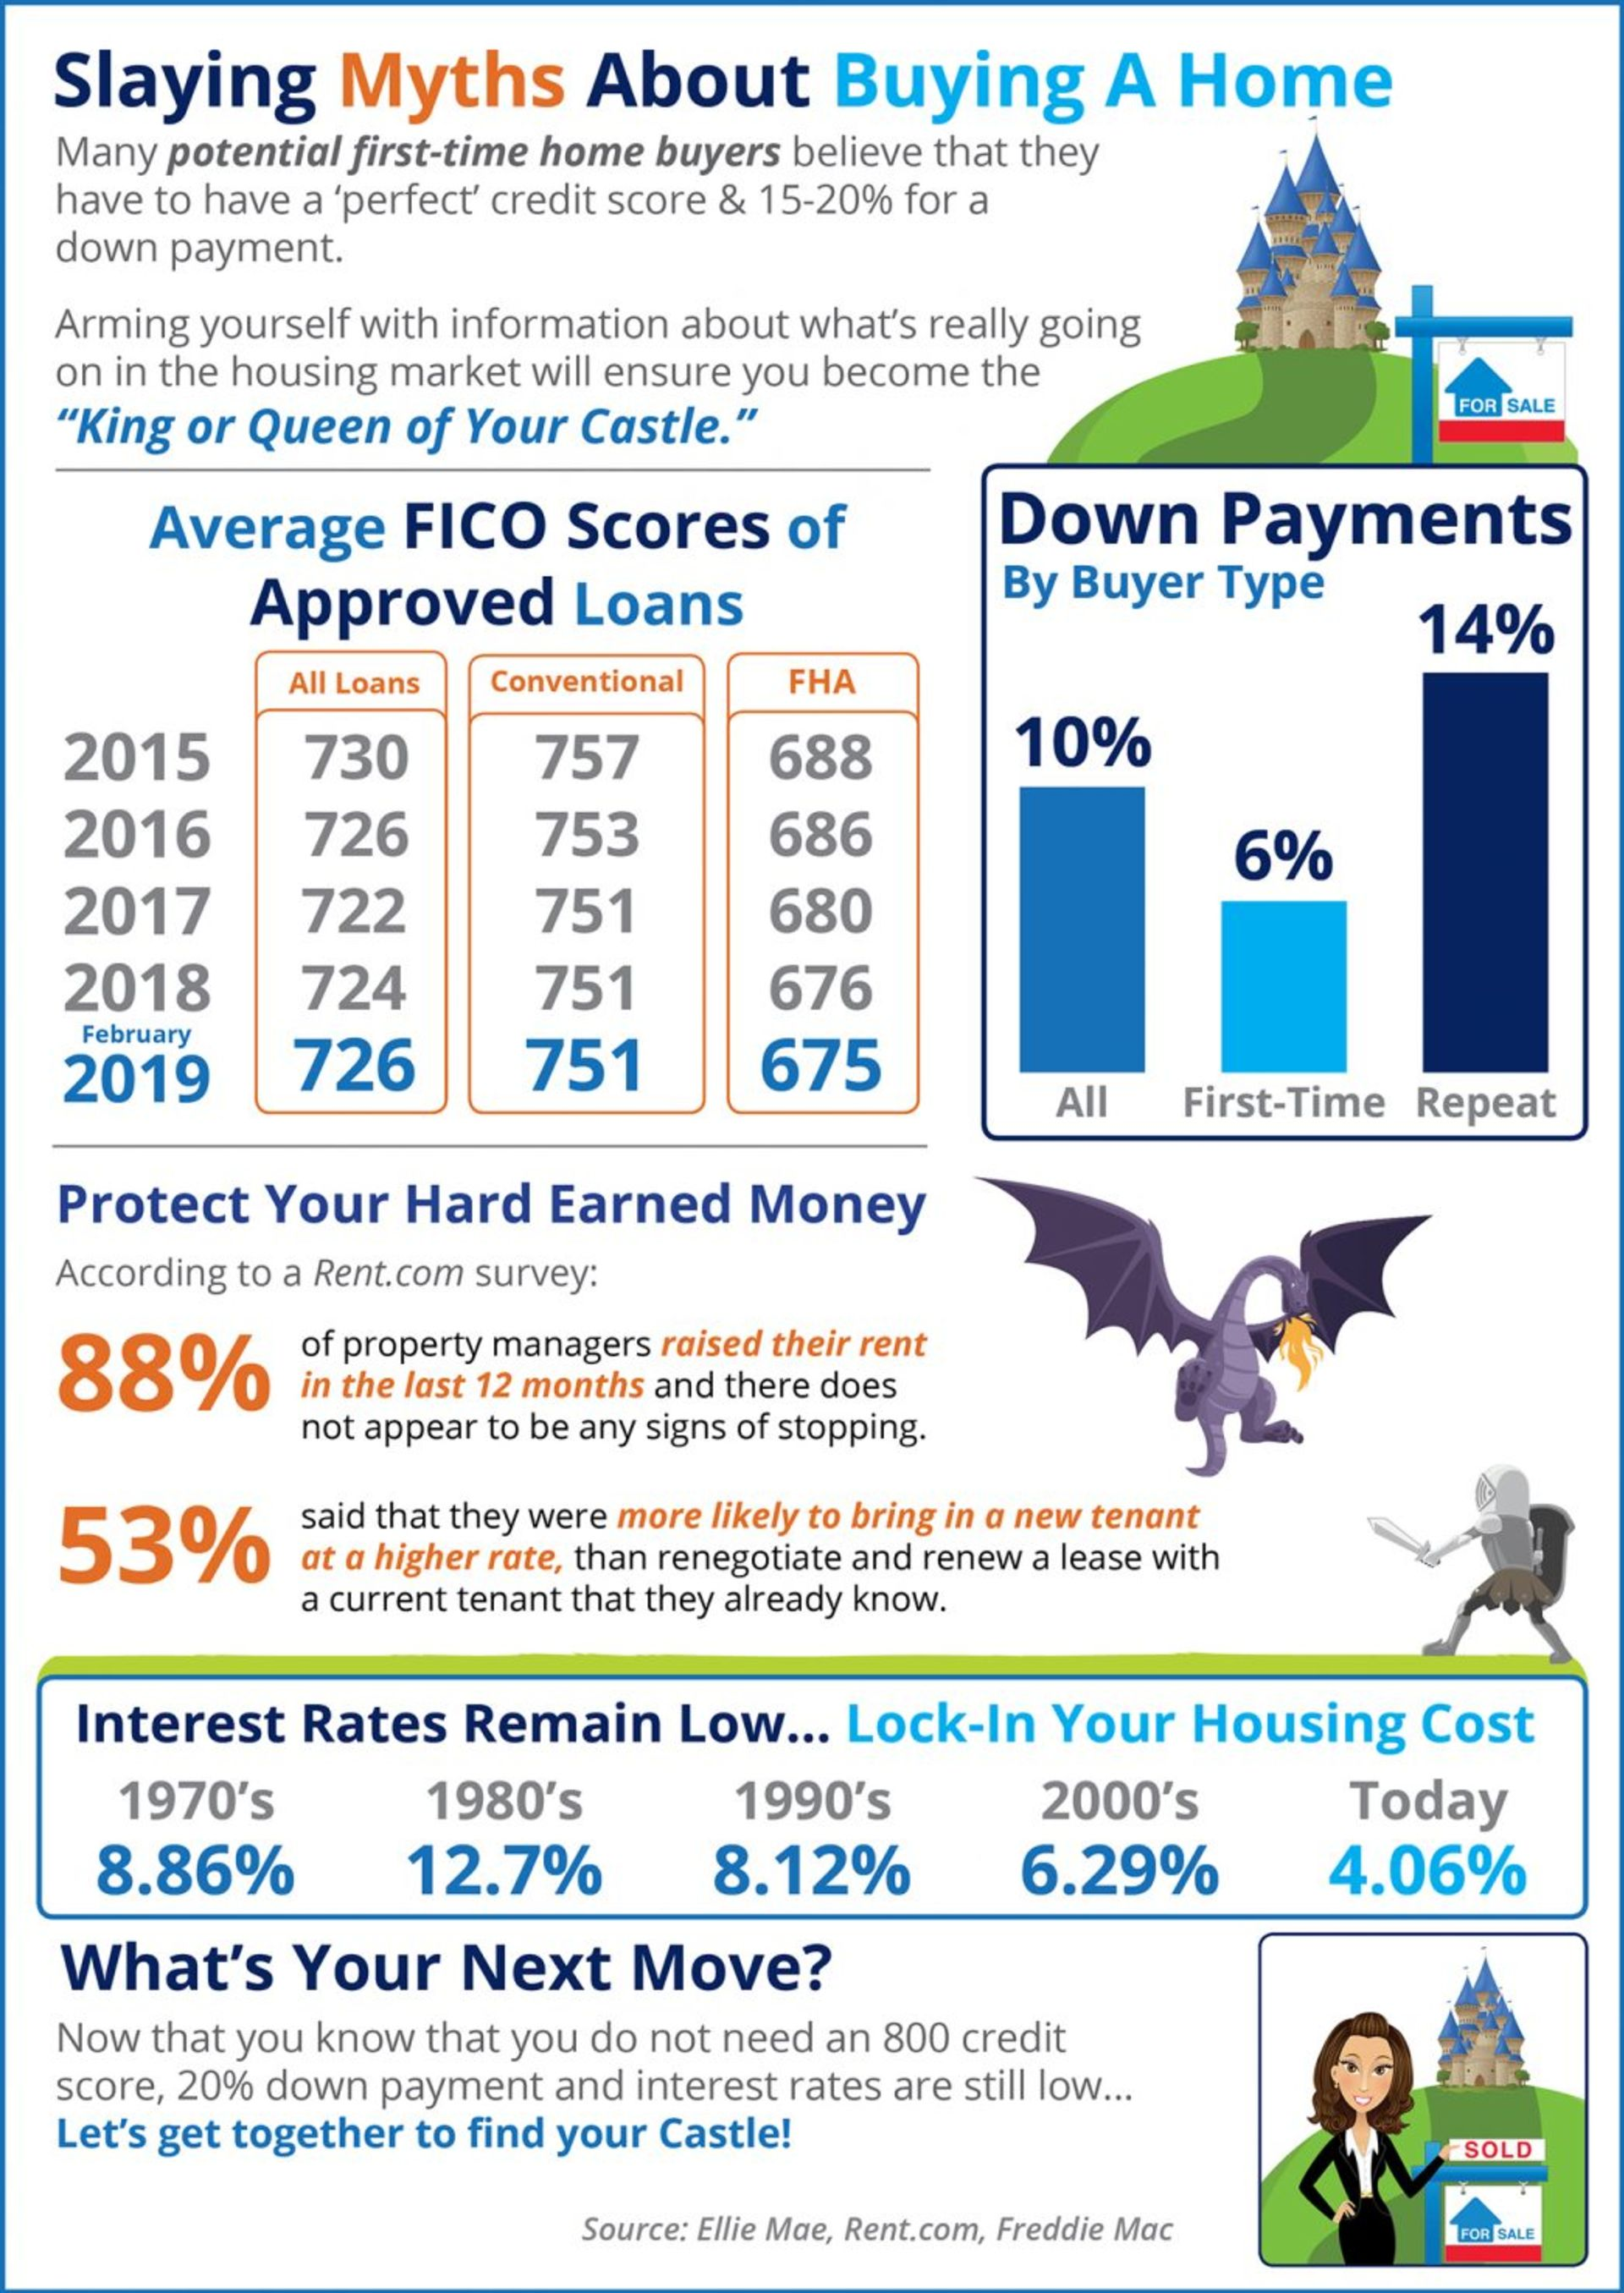 Slaying the Largest Homebuying Myths Today [INFOGRAPHIC]